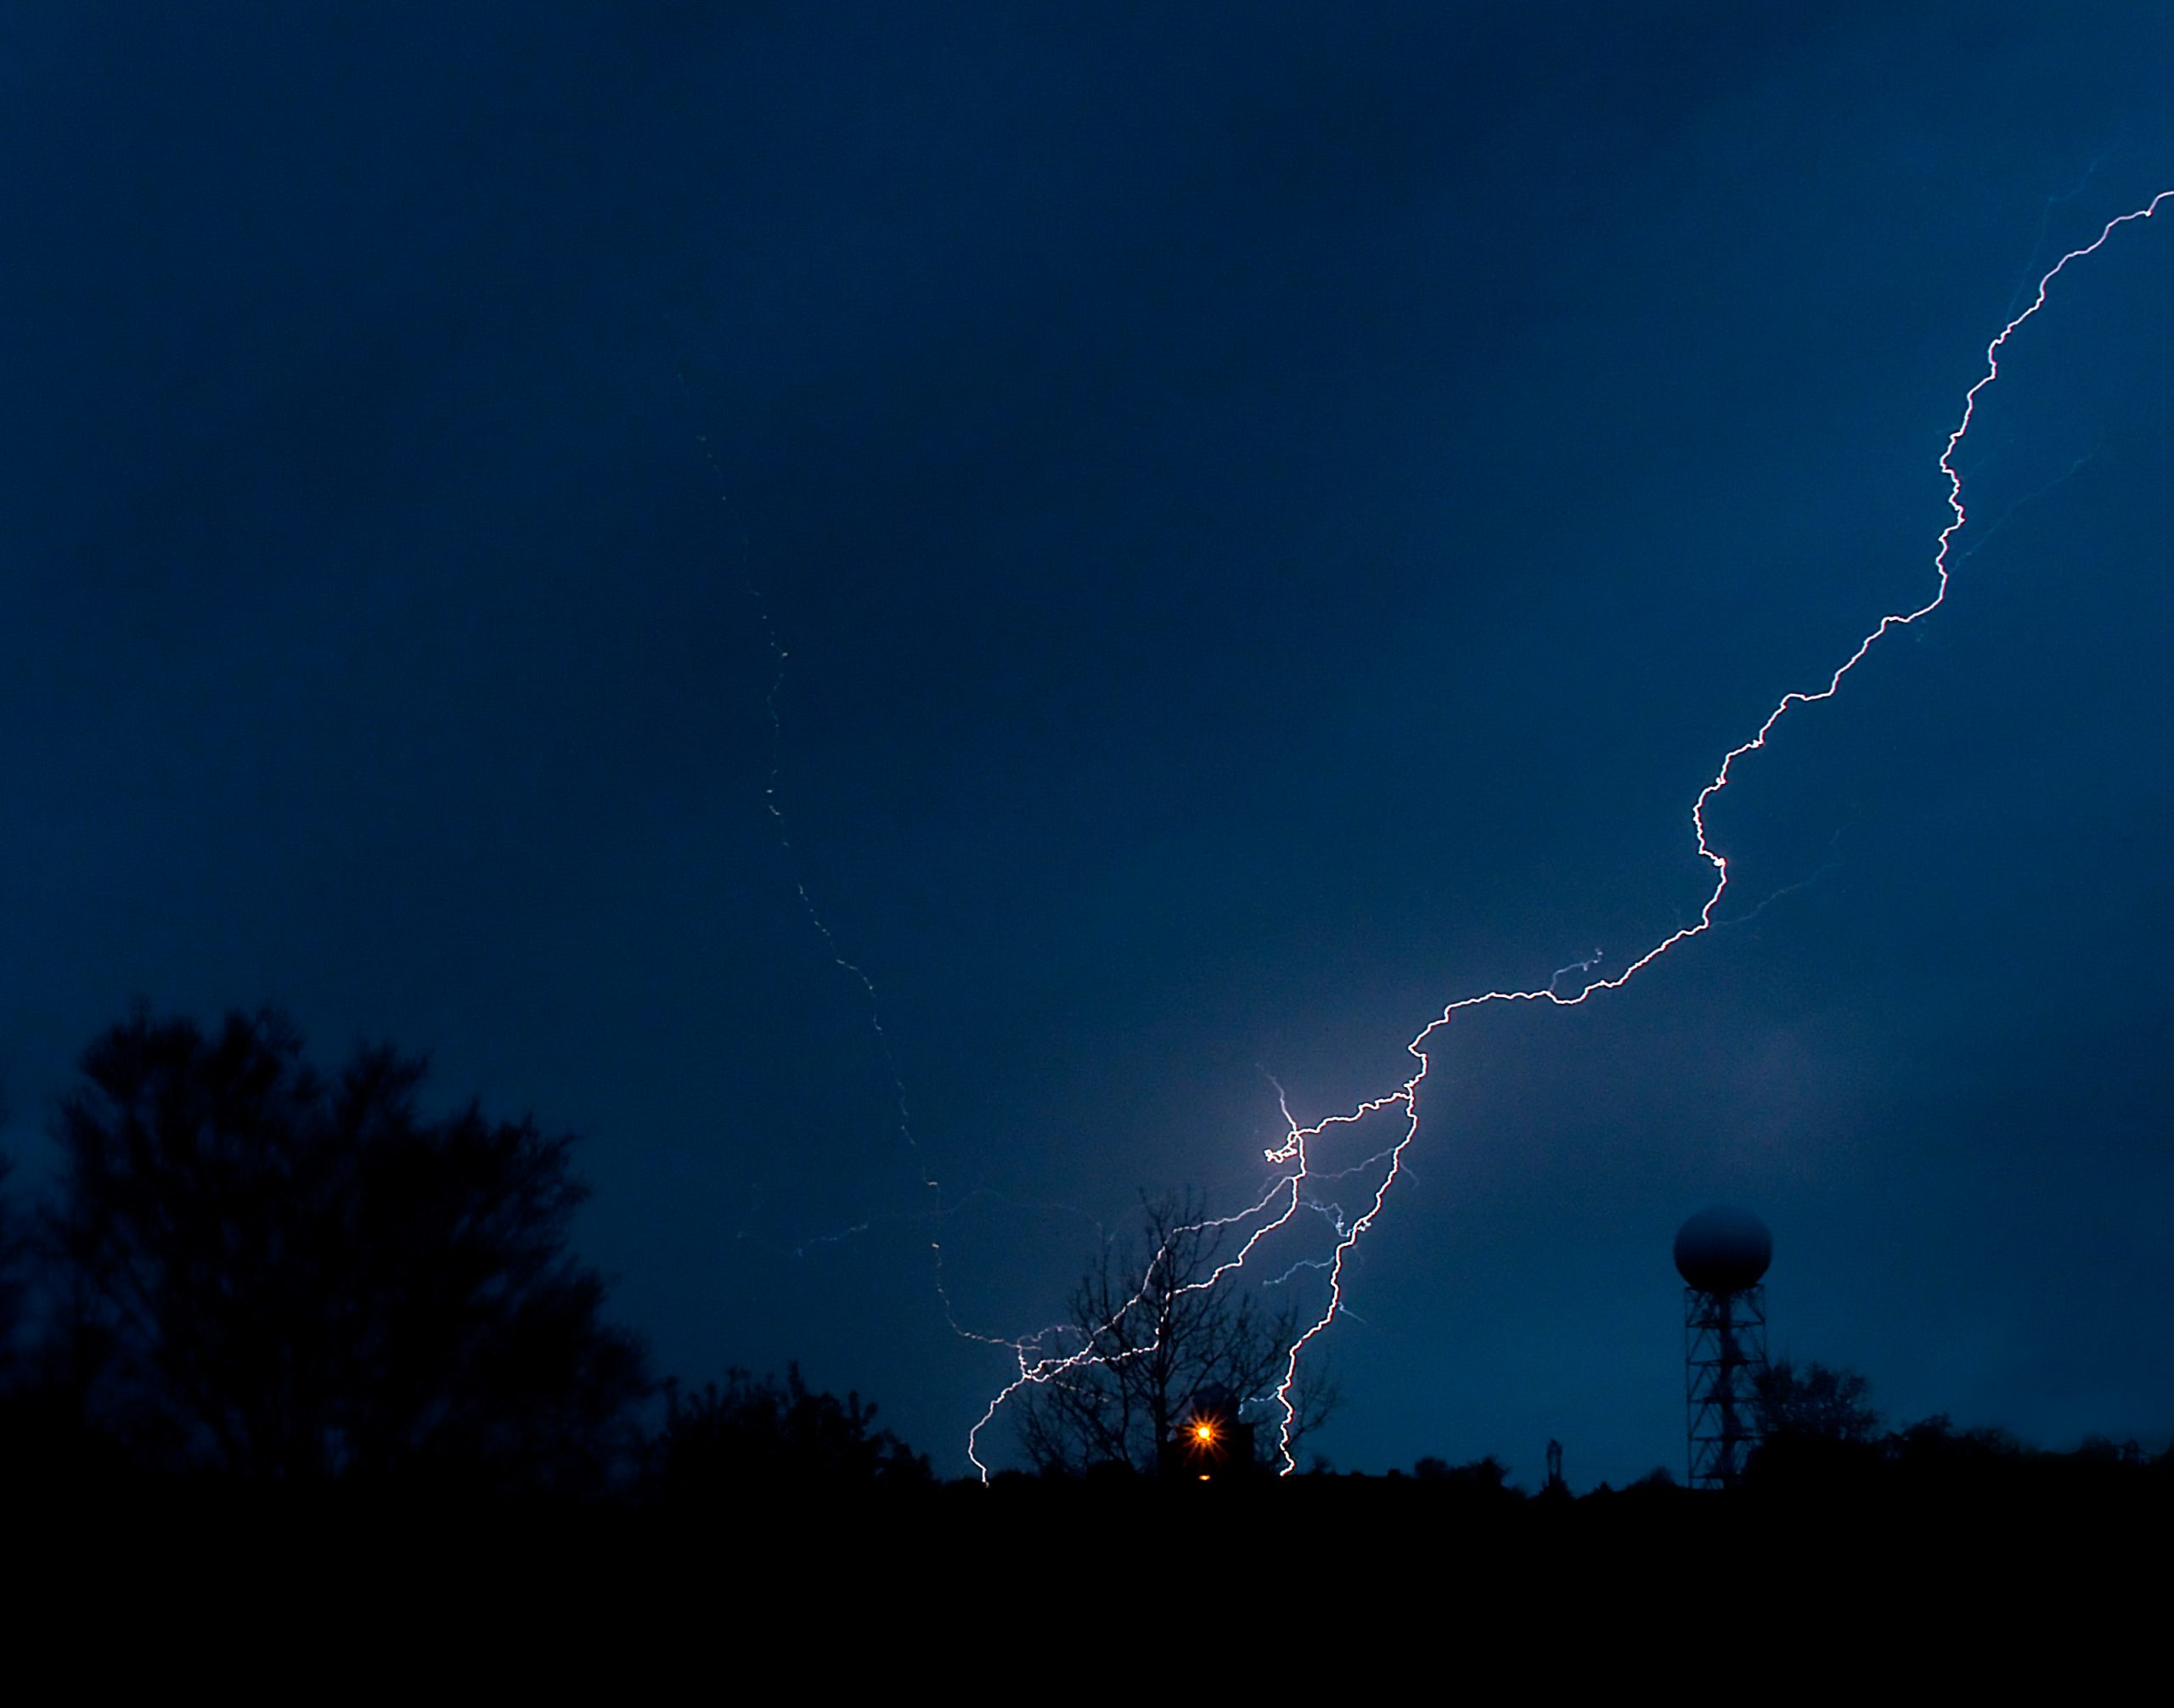 lightning strike in the distance